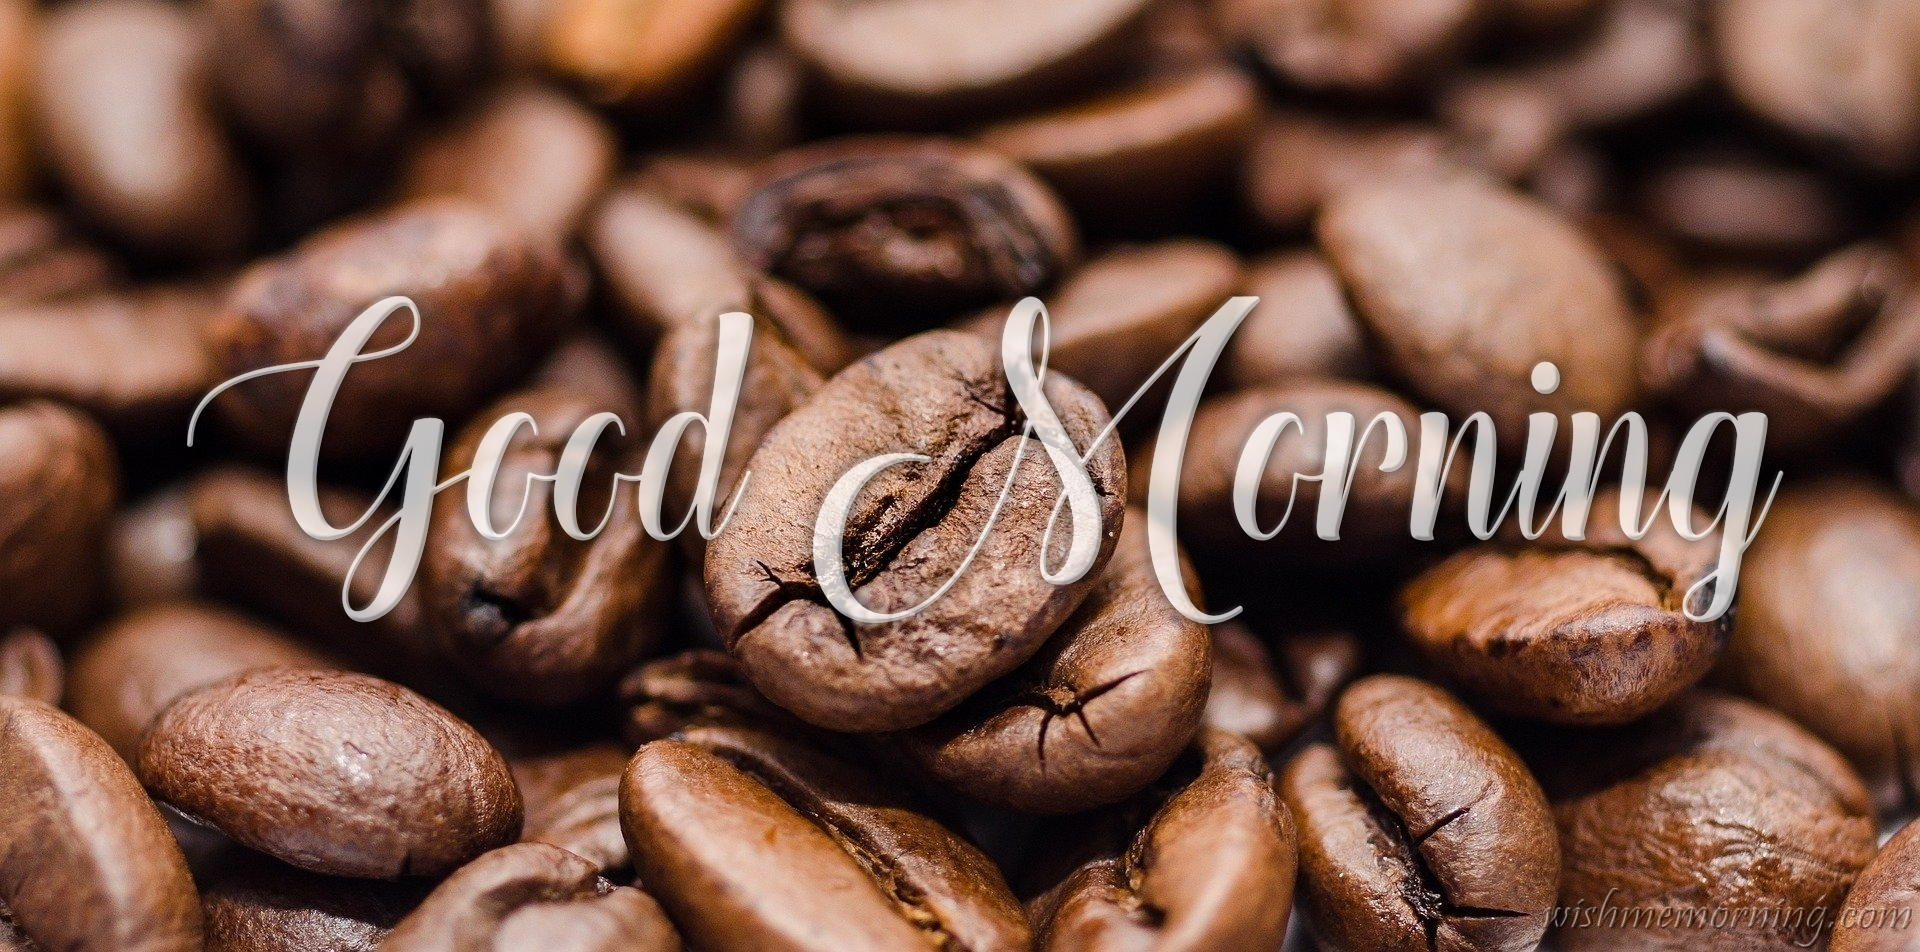 Good Morning Wish Coffee Beans Background Good Morning WIshes